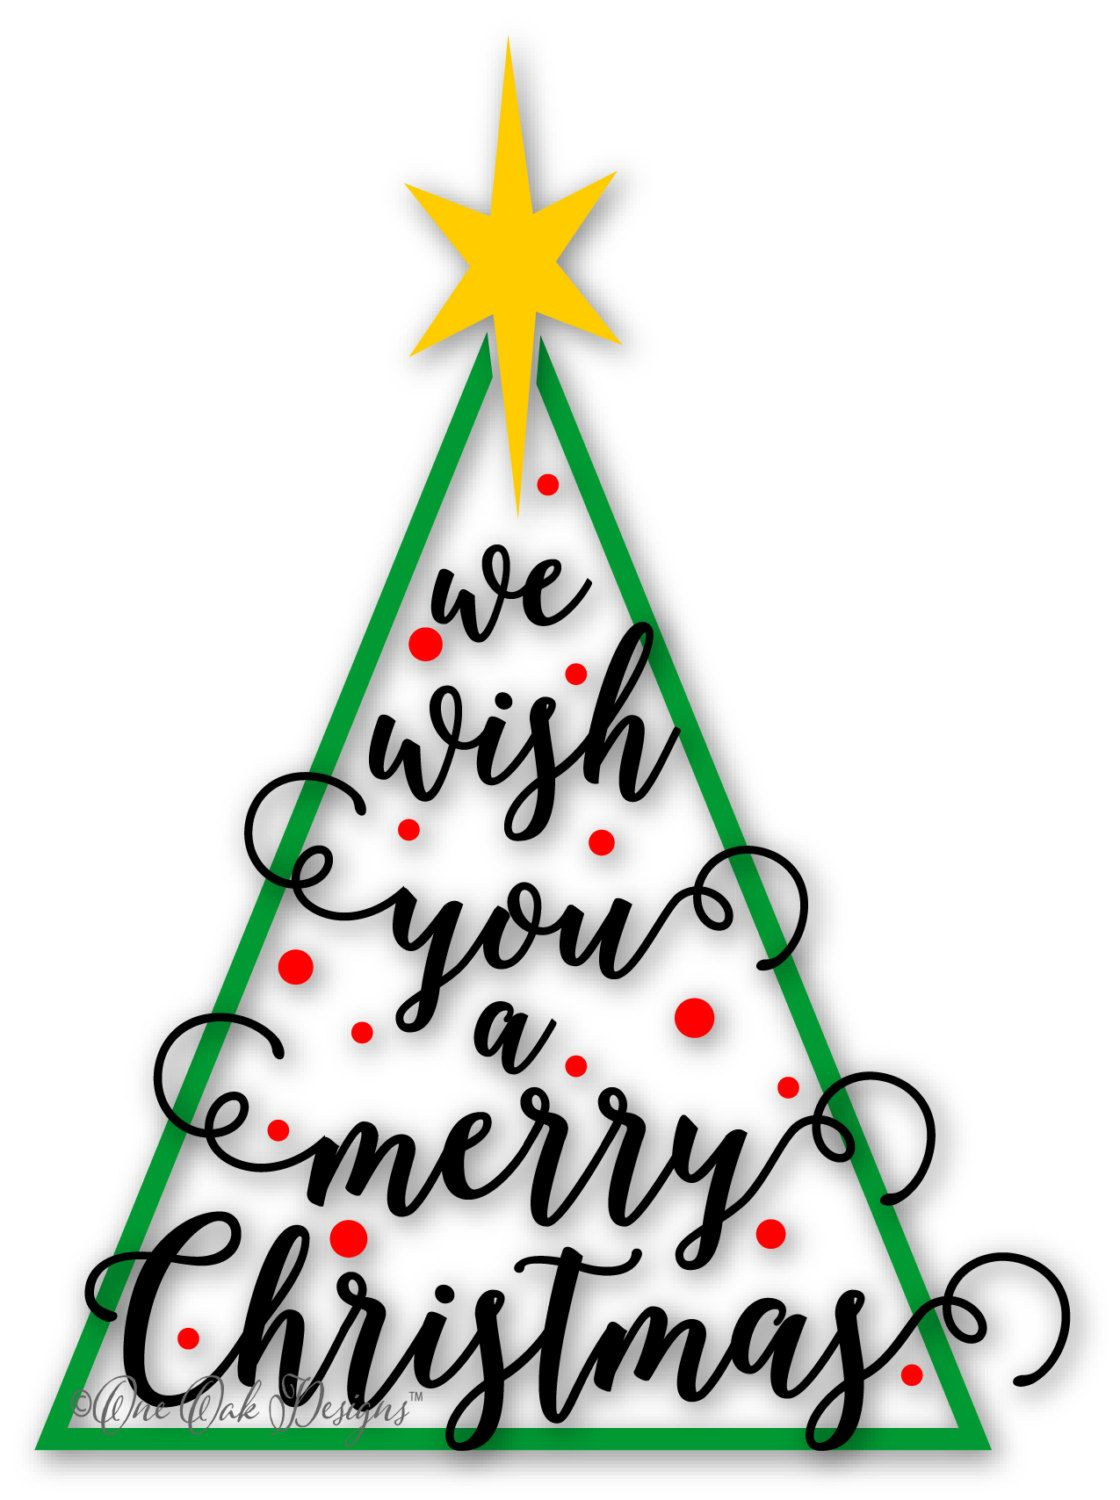 We Wish You A Merry Christmas Tree Cut File Svg Dxf